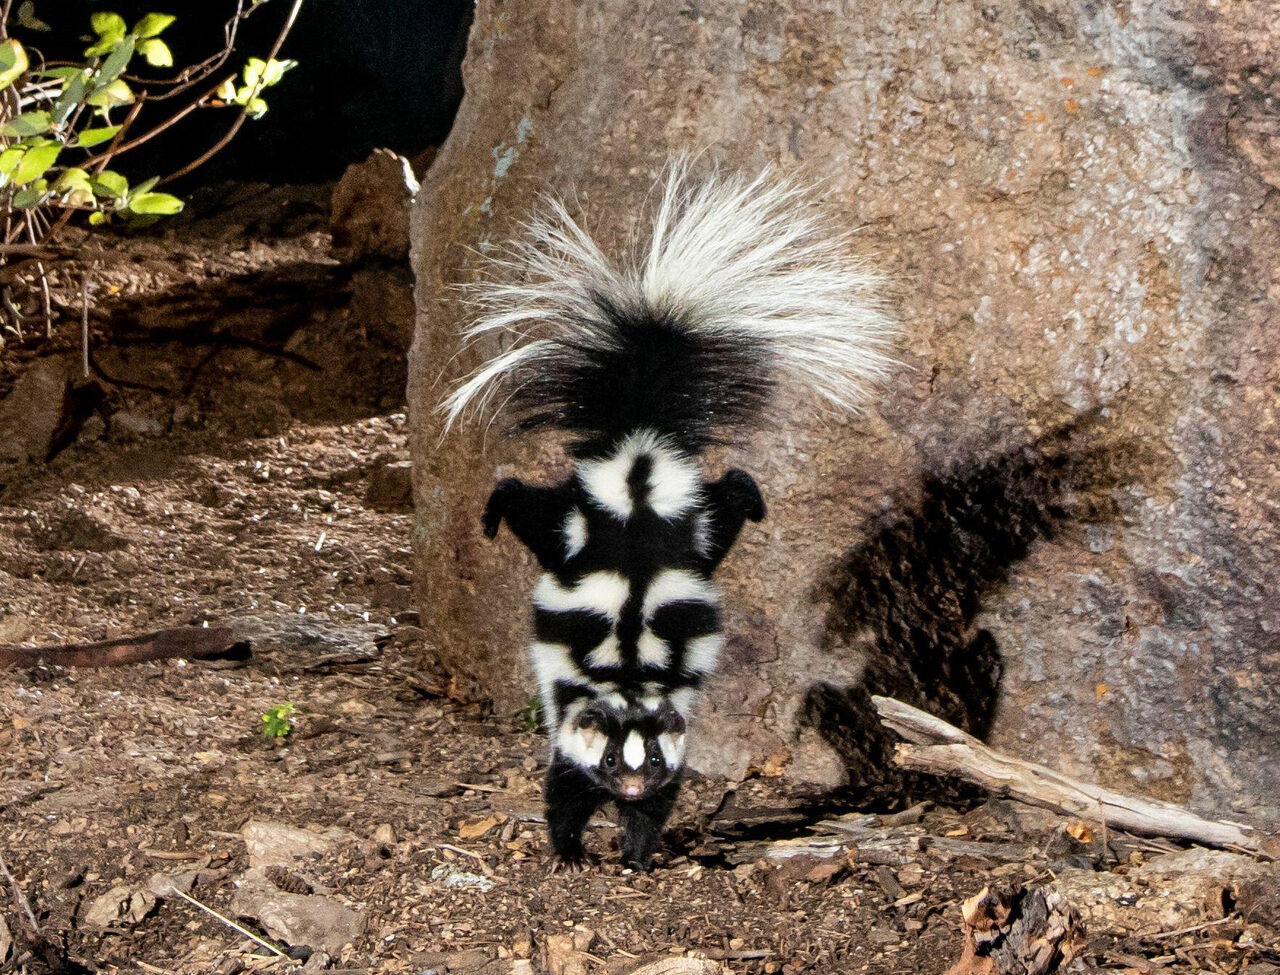 Spotted skunks perform an impressive handstand to appear twice their size and ward off would-be predators.